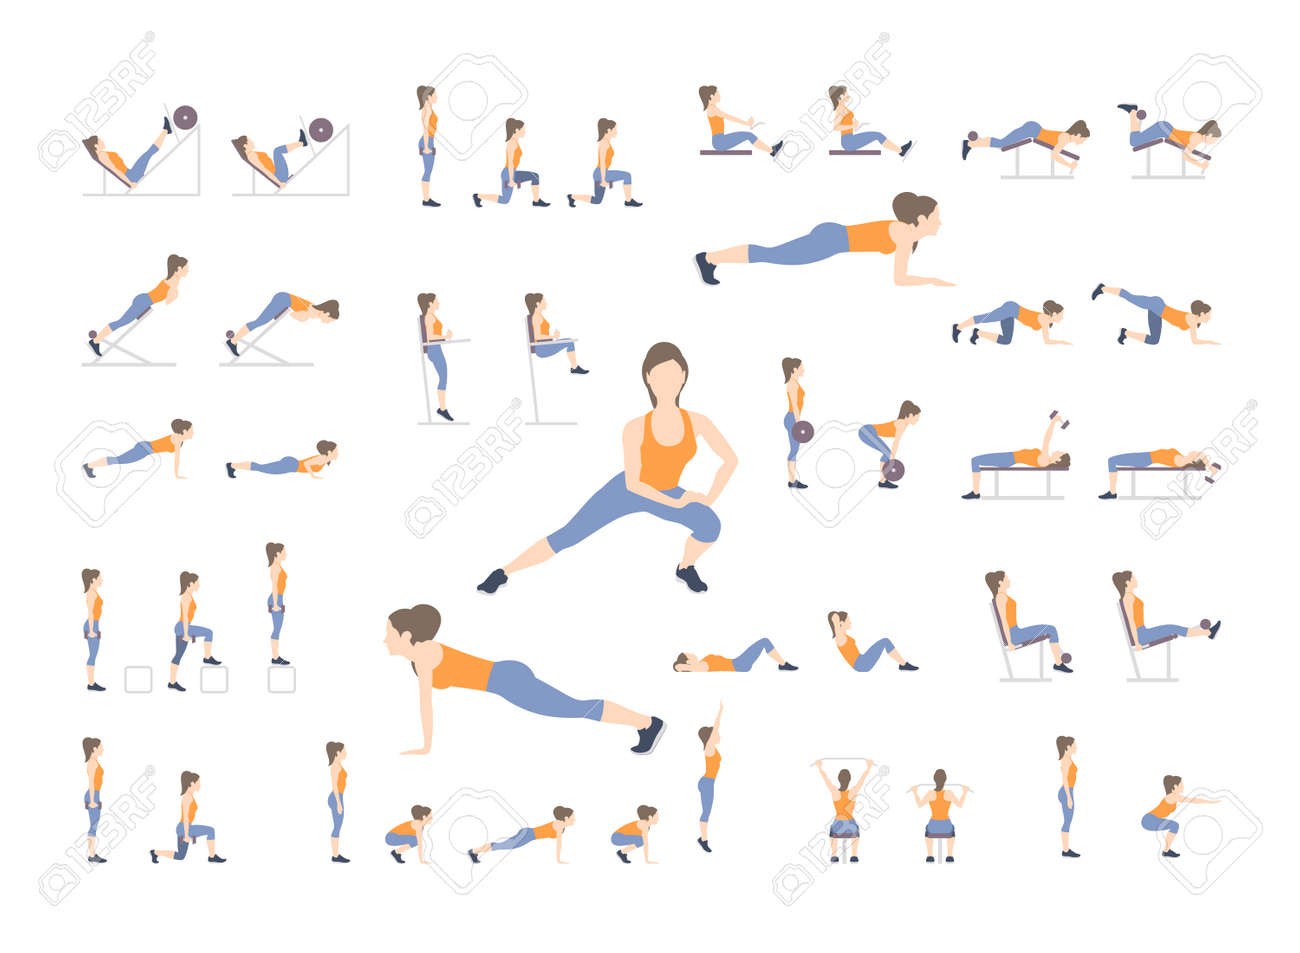 Set Of Sport Exercises Exercises With Free Weight Exercises Royalty Free Cliparts Vectors And Stock Illustration Image 102499594